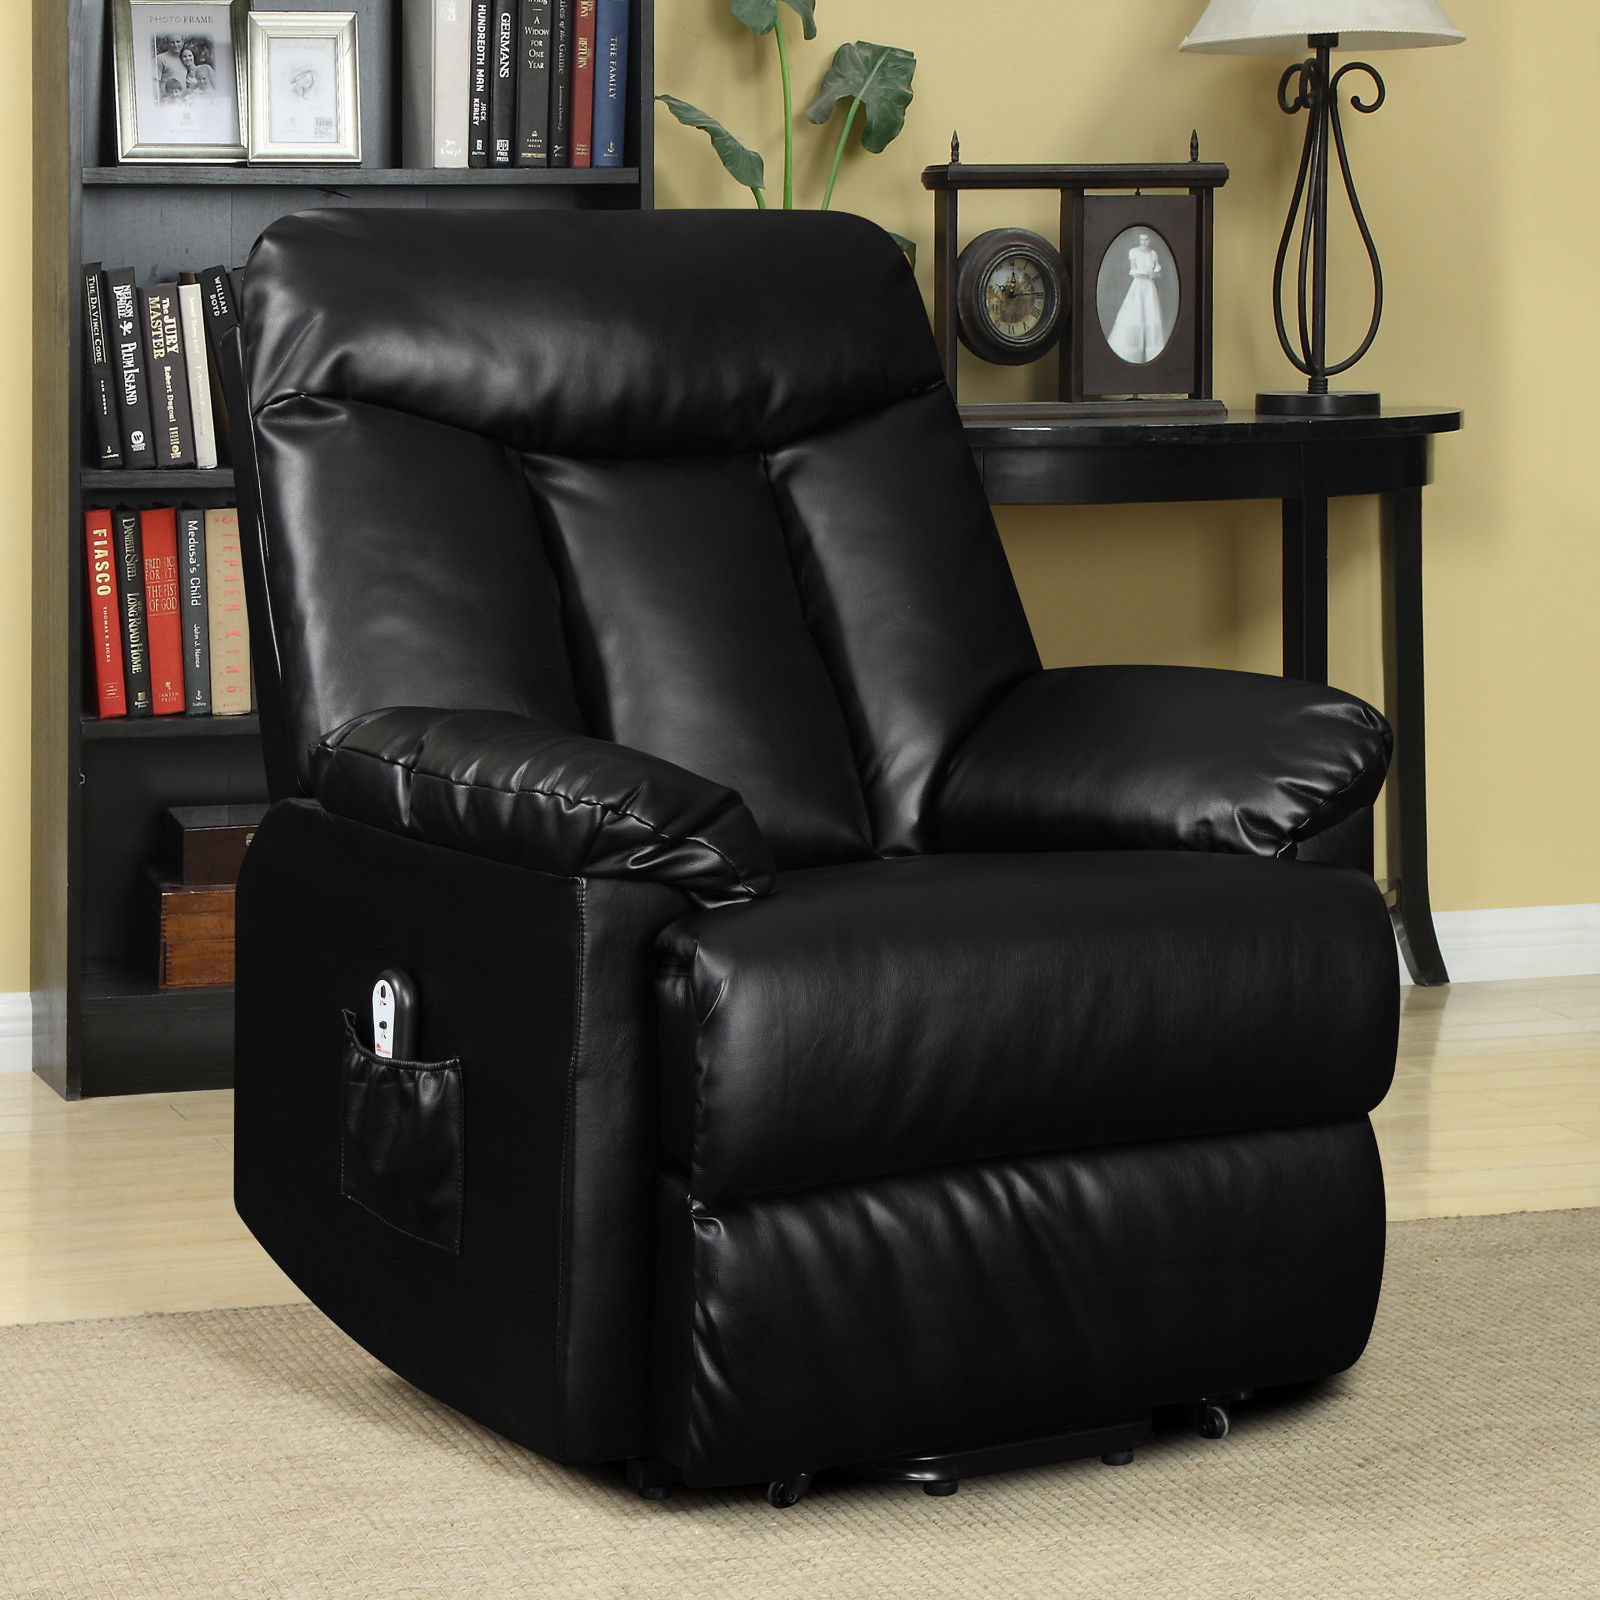 Electric lift chair recliner black leather power motion for Recliner lift chair